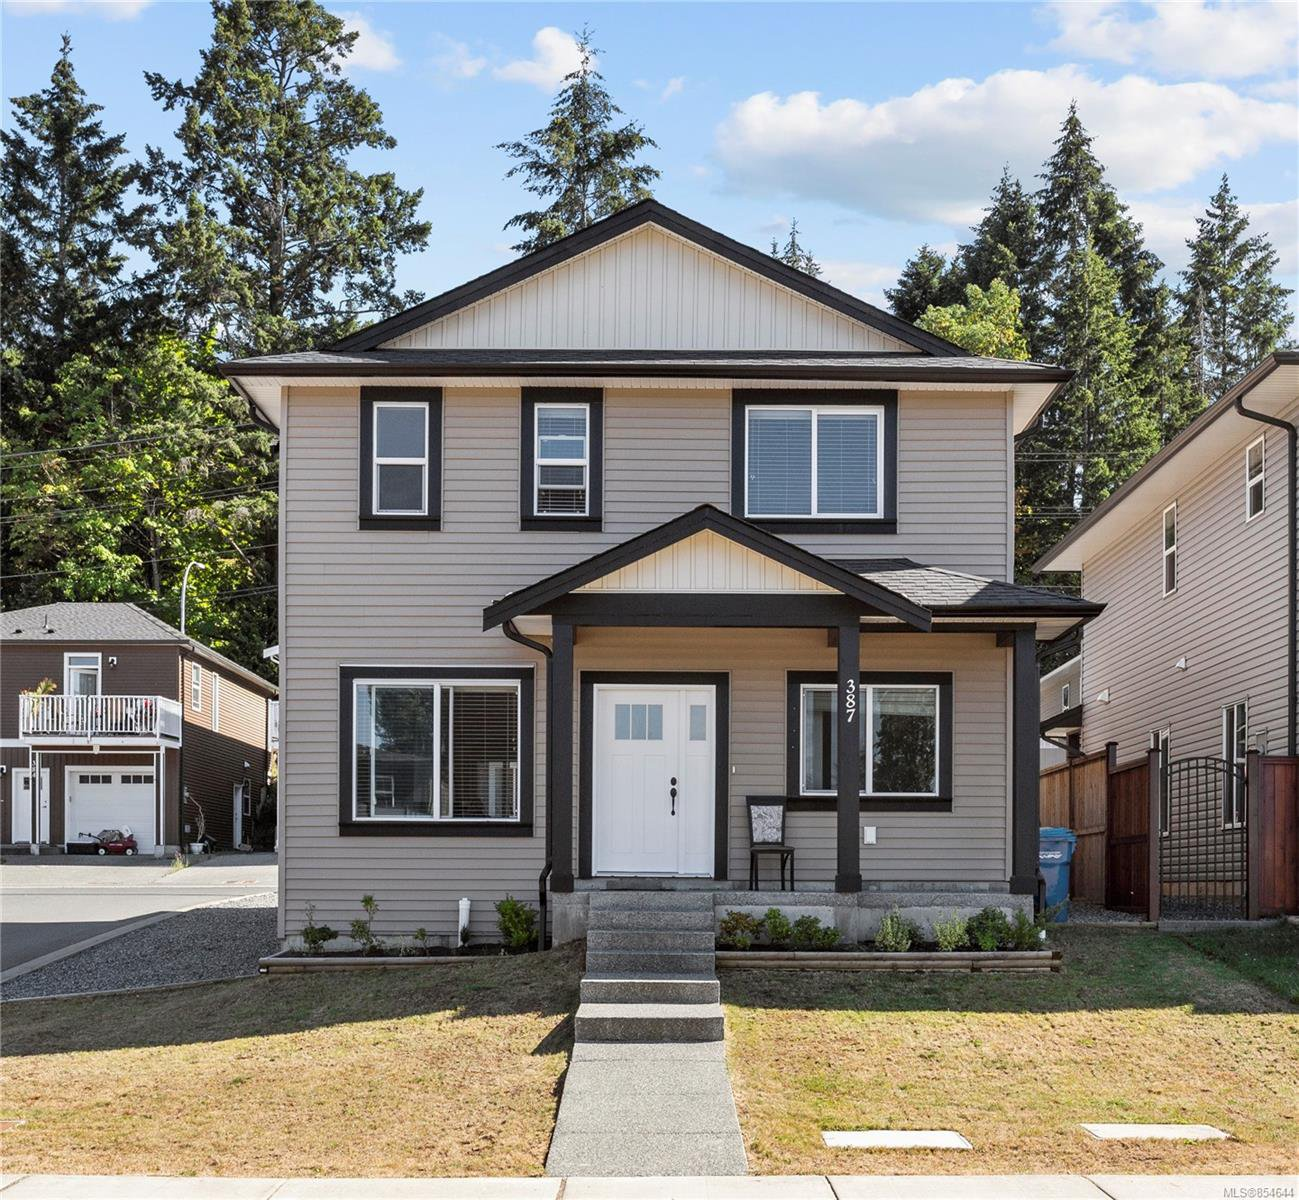 Main Photo: 387 CAMBIE Rd in : Na South Nanaimo House for sale (Nanaimo)  : MLS®# 854644